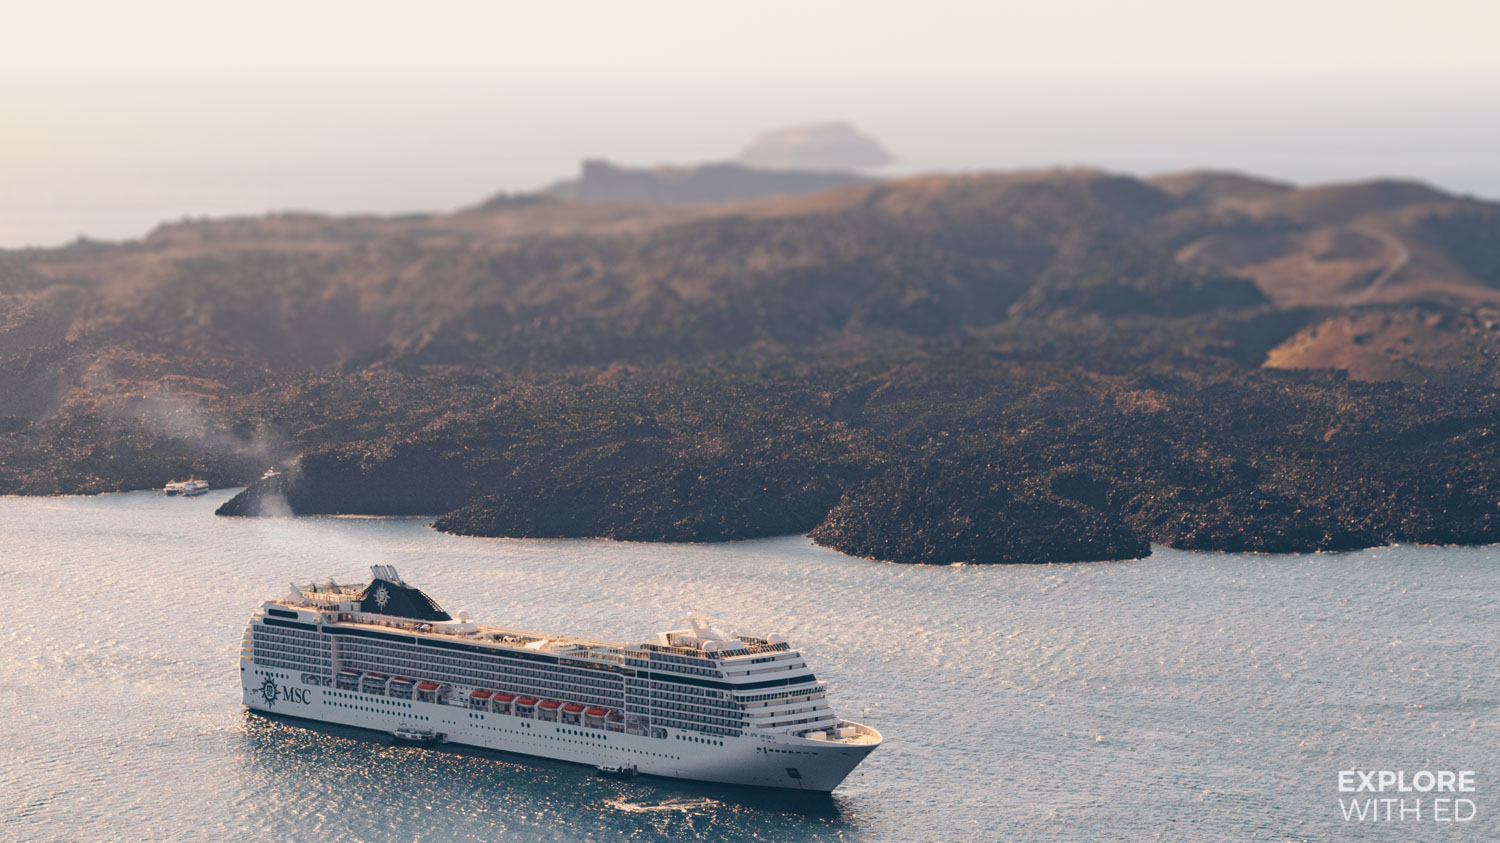 MSC Musica on an Eastern Mediterranean cruise in Santorini Greece